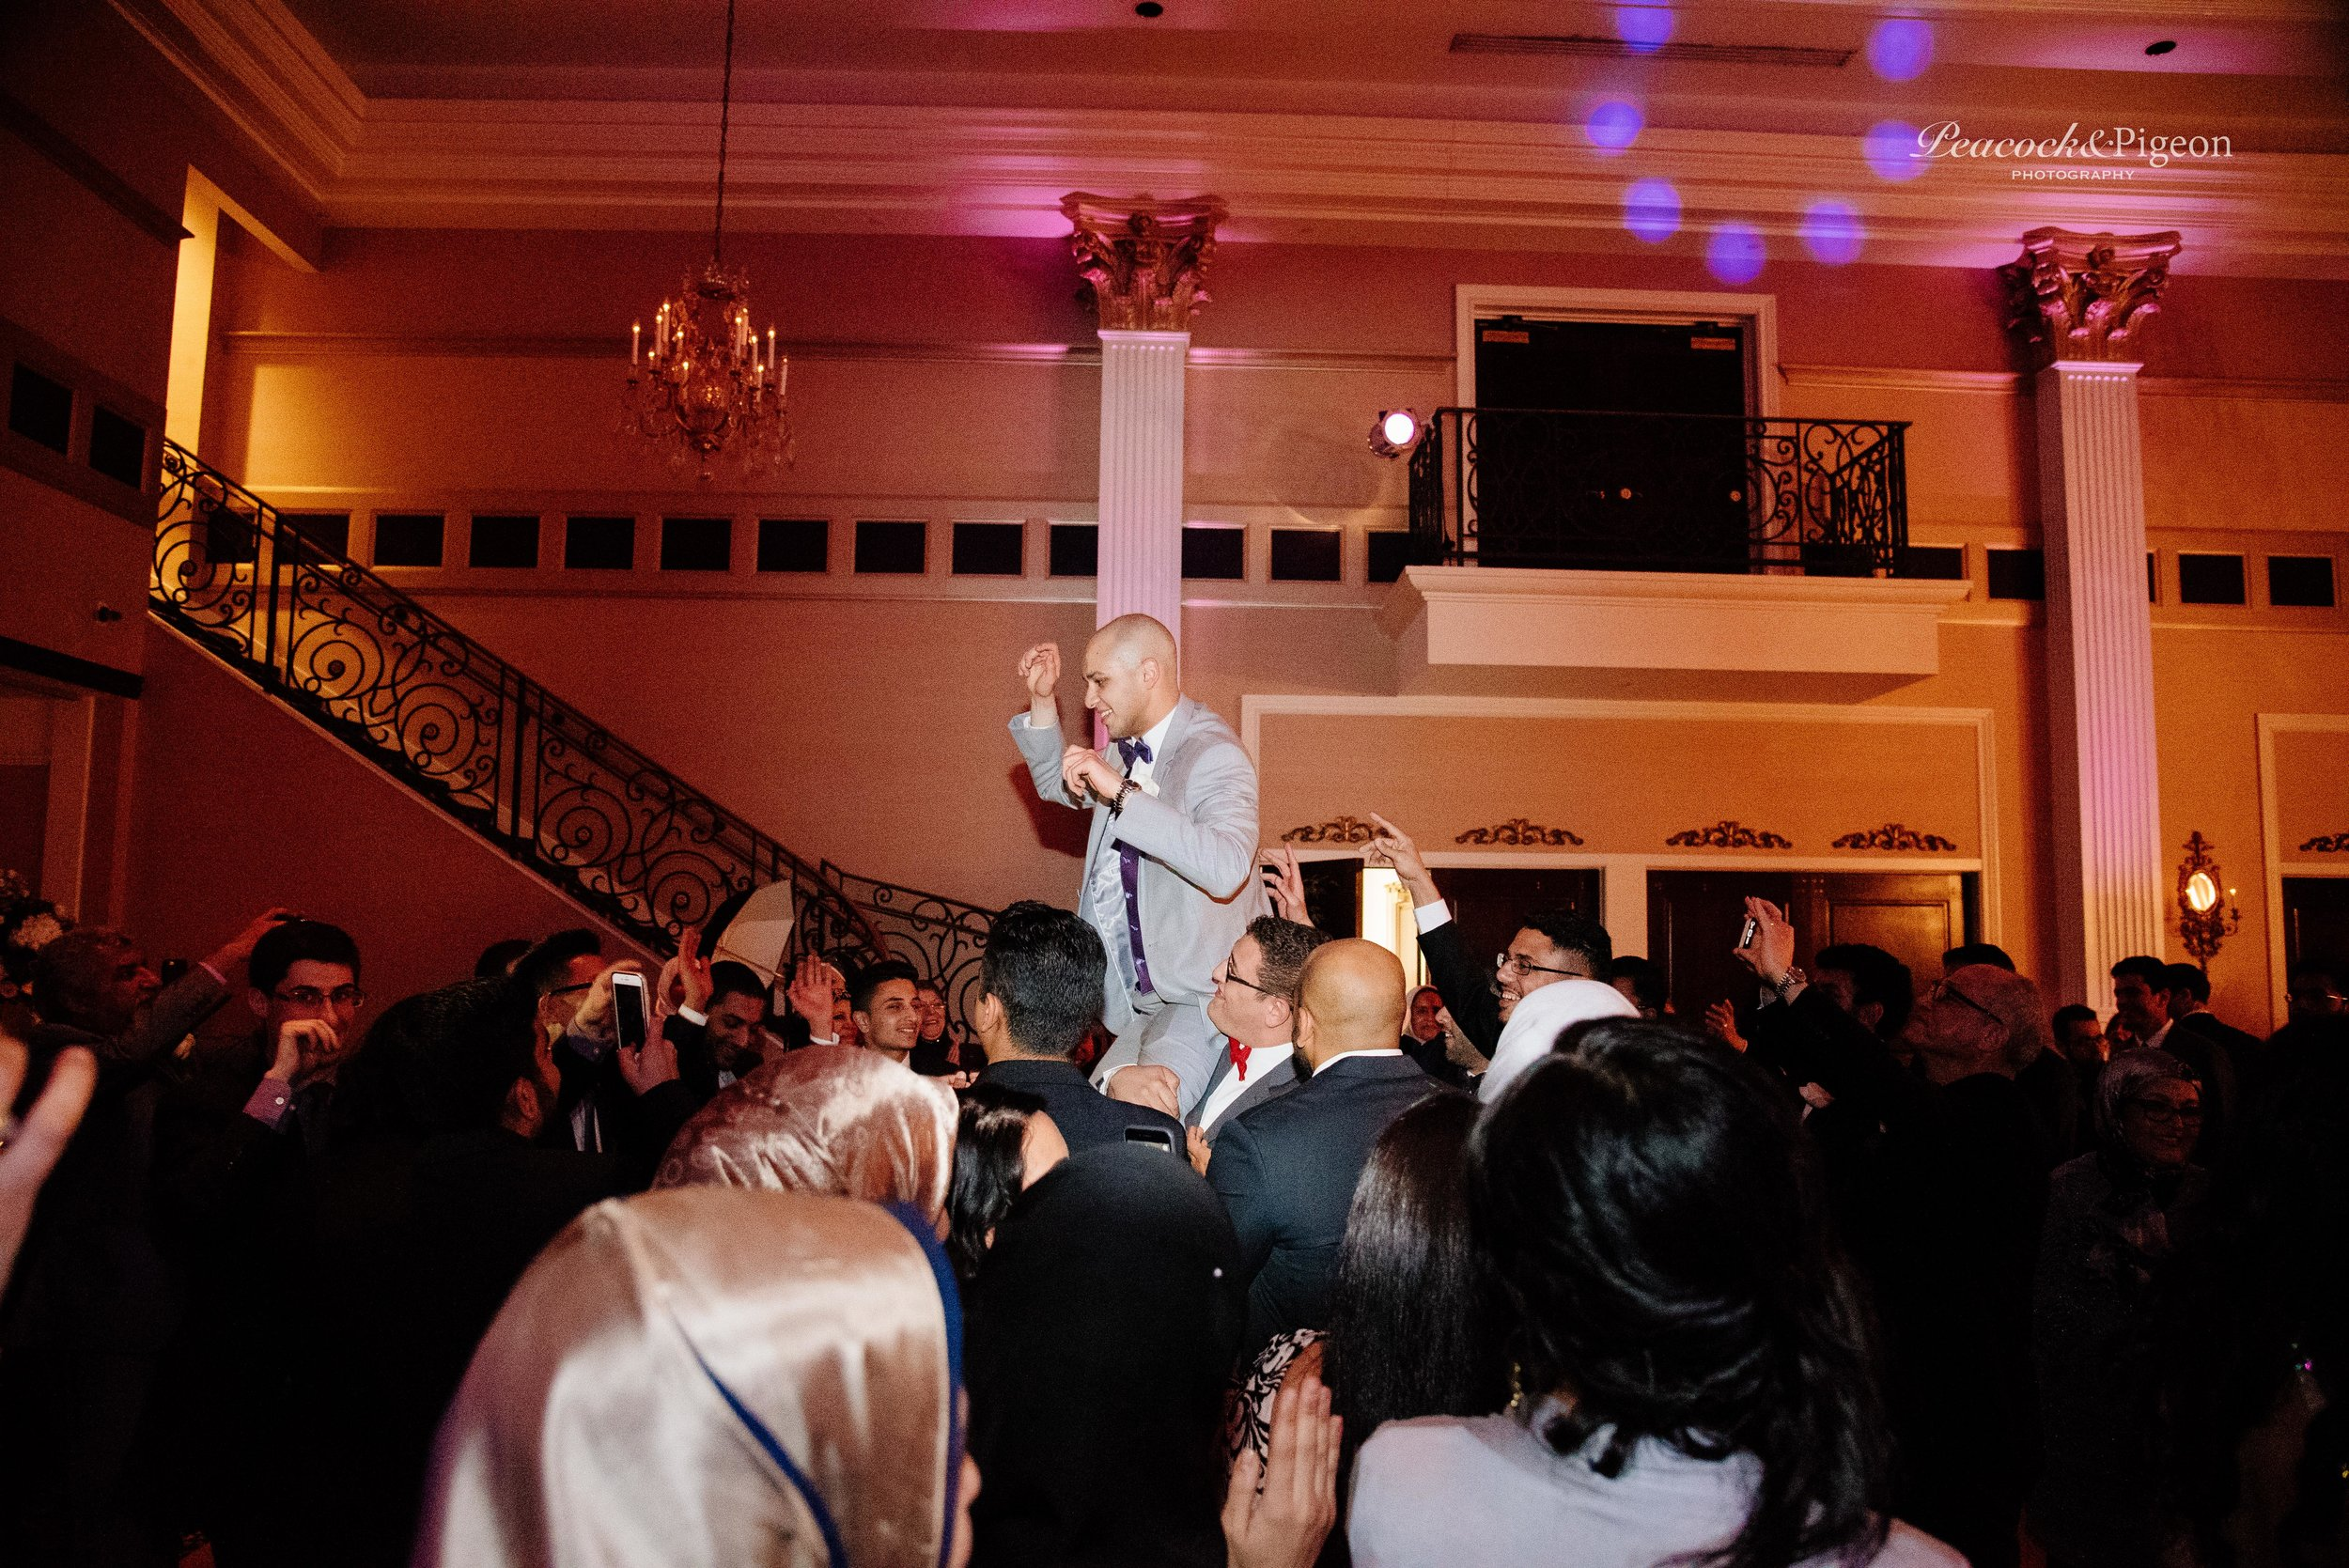 The_Wedding_of_Radwa_and_Kareem_at_Somerset_Palace_Part_Fifteen_More_Dancing_Watermarked-2.jpg